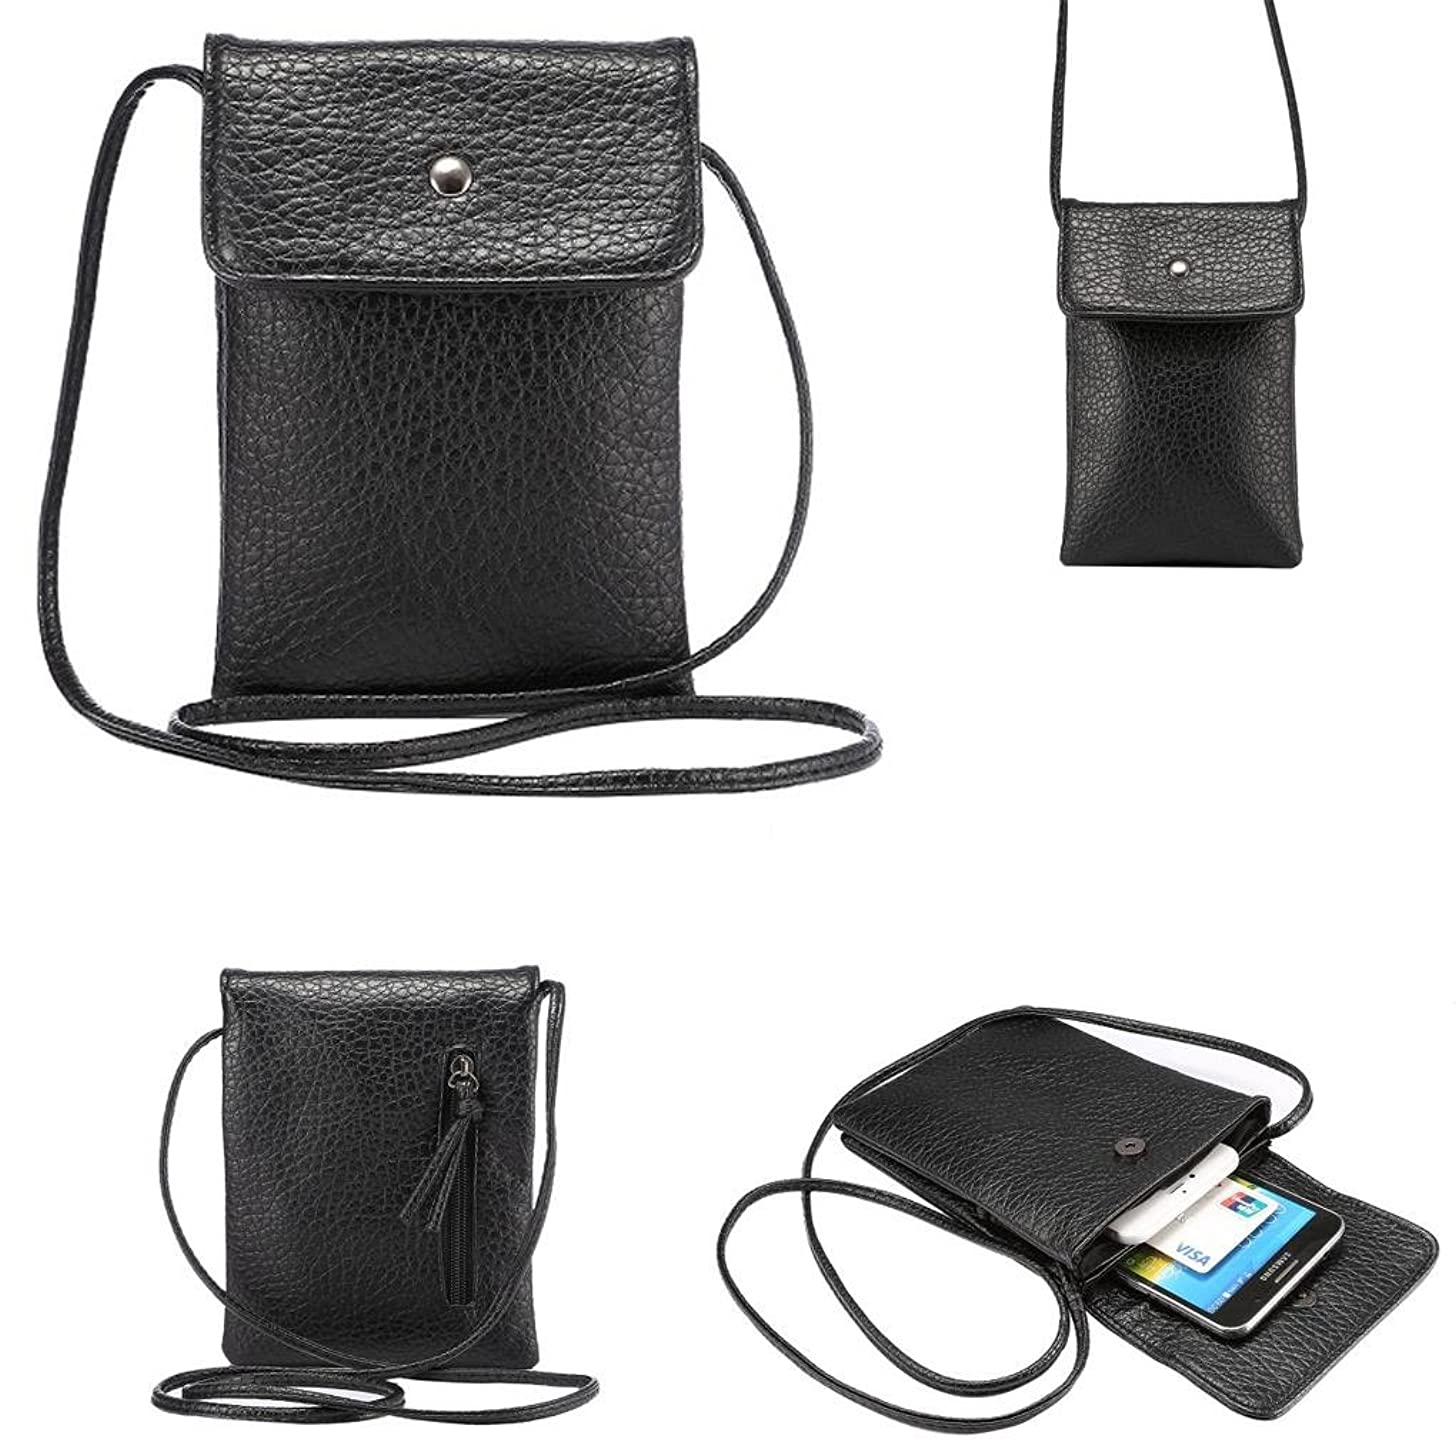 WaitingU Universal Crossbody Cell Phone Bag PU Leather Carrying Cases Credit Card Holder Shoulder Pouch Bag for iPhone 6/6S Plus 6/6S Samsung Galaxy Note Series Phones Under 6.2 inchs -Black